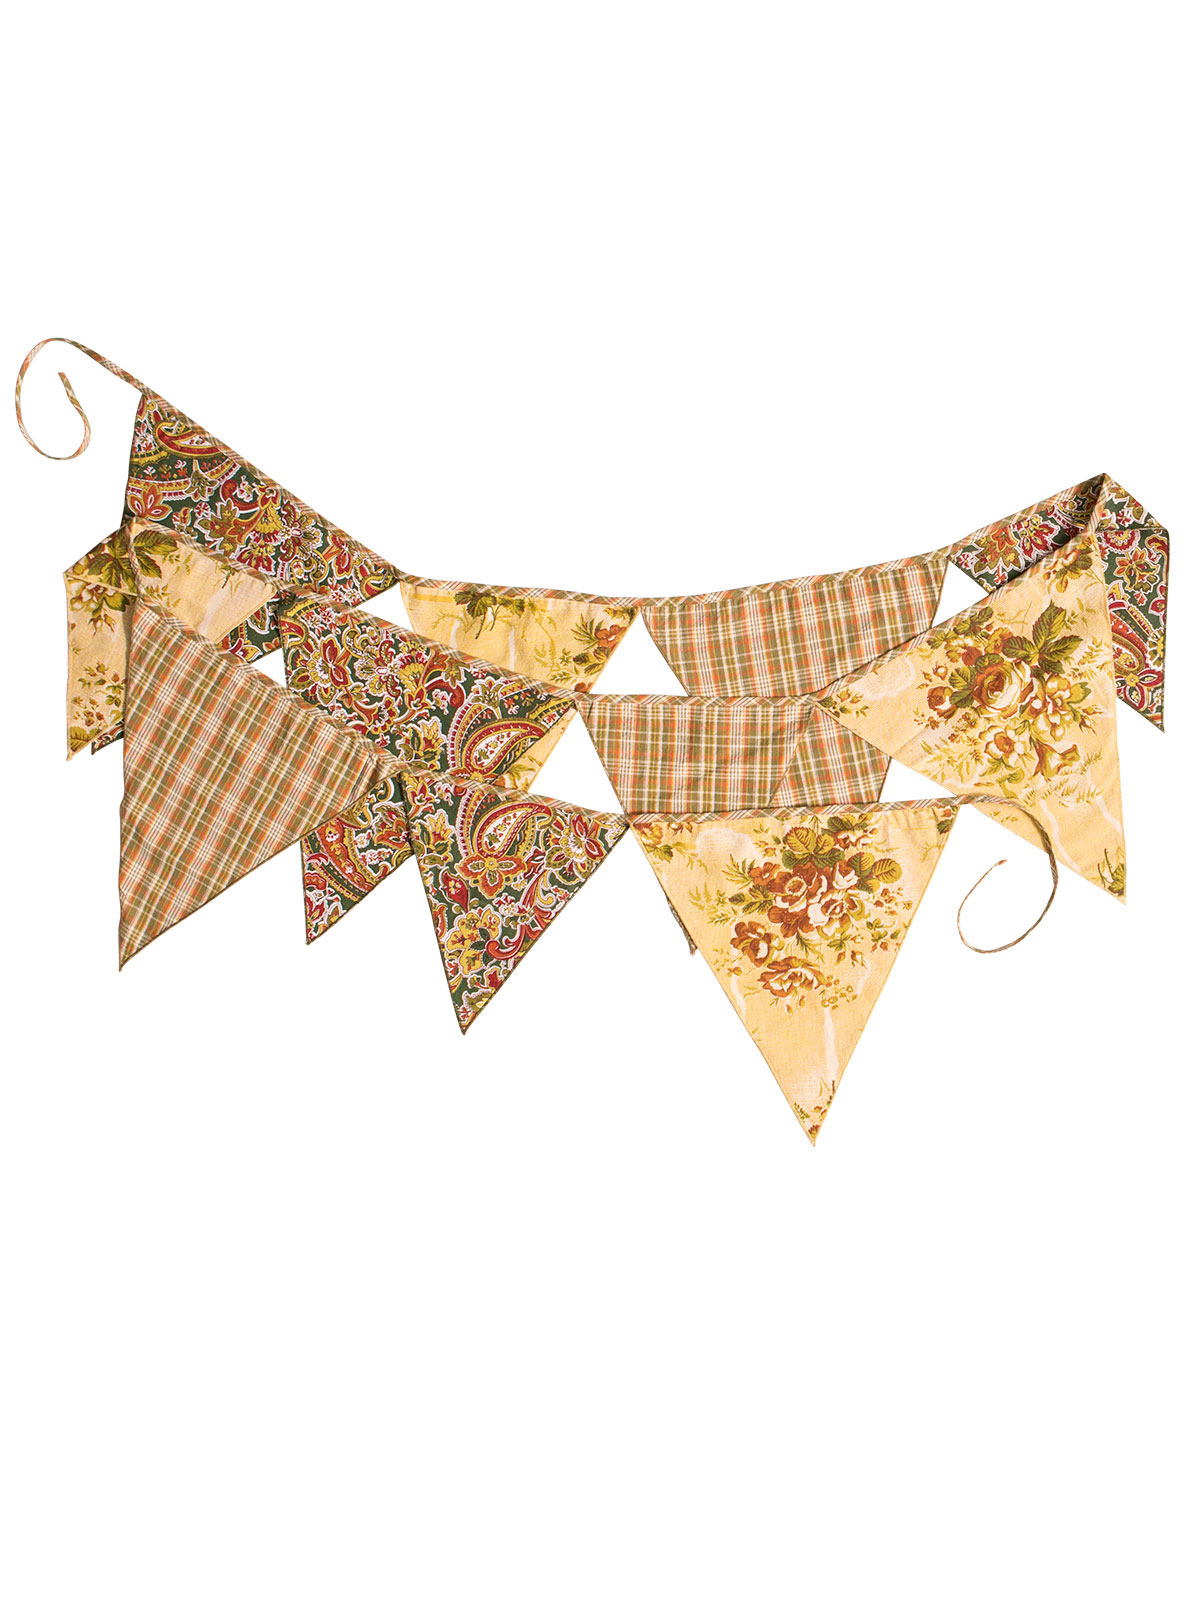 September Patchwork Party Pennants